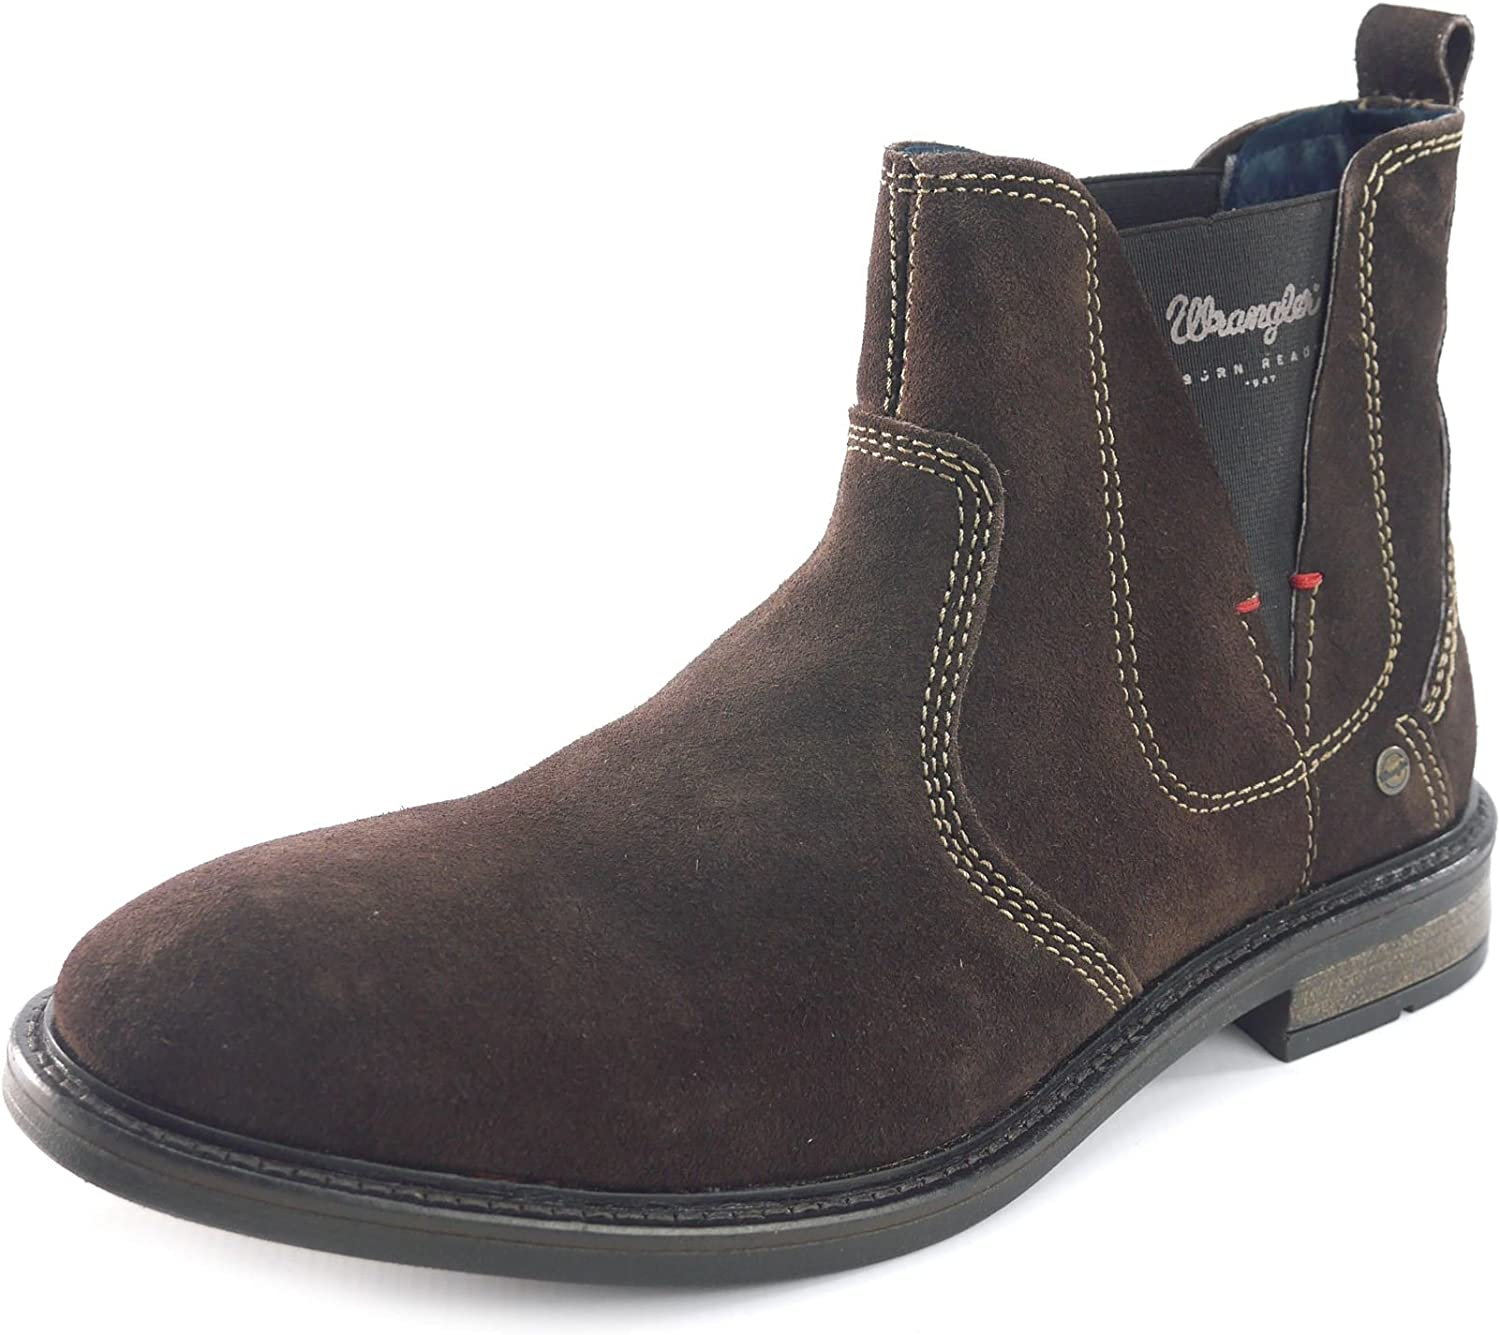 Wrangler Roll Chelsea Mens Ankle Suede Leather Brown Pull On Boots